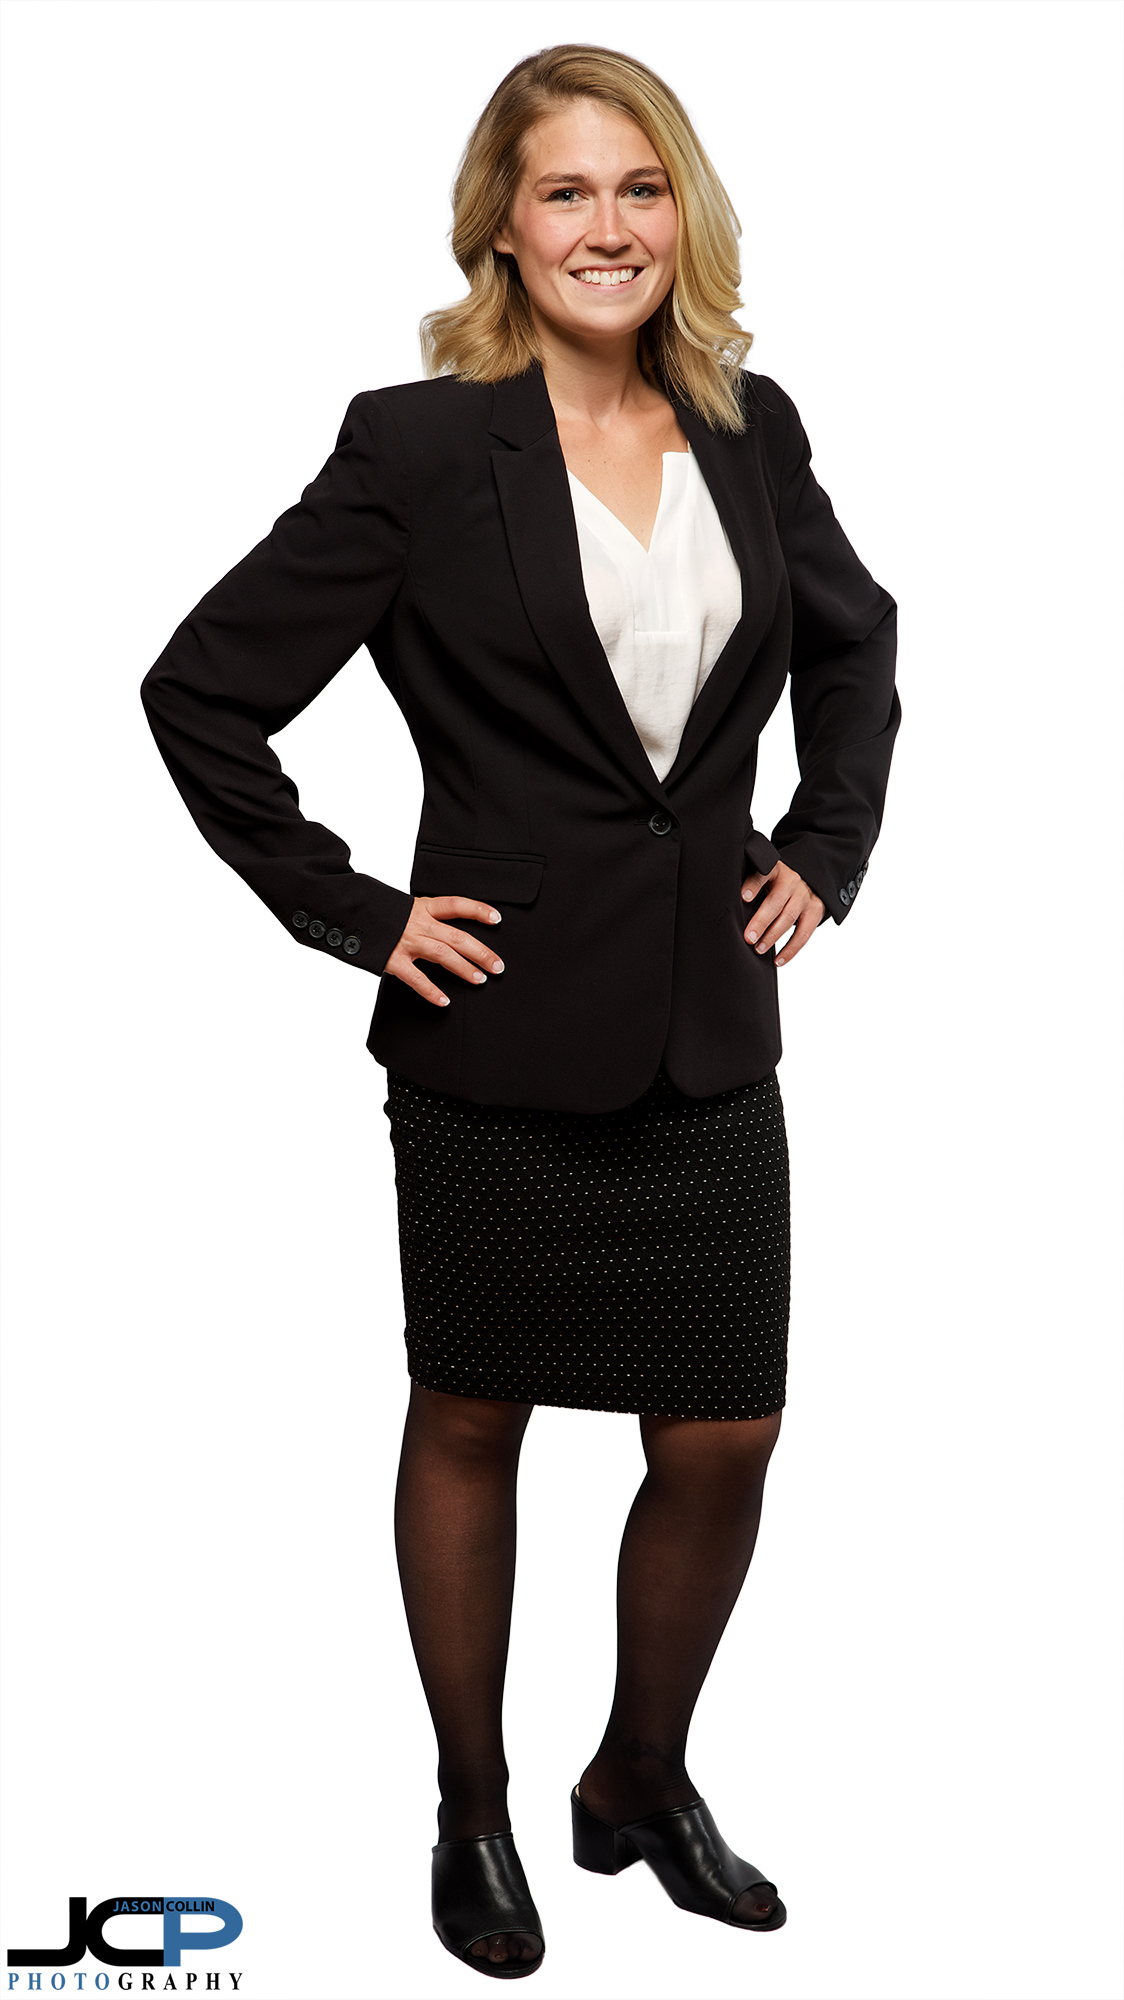 full body real estate agent headshot